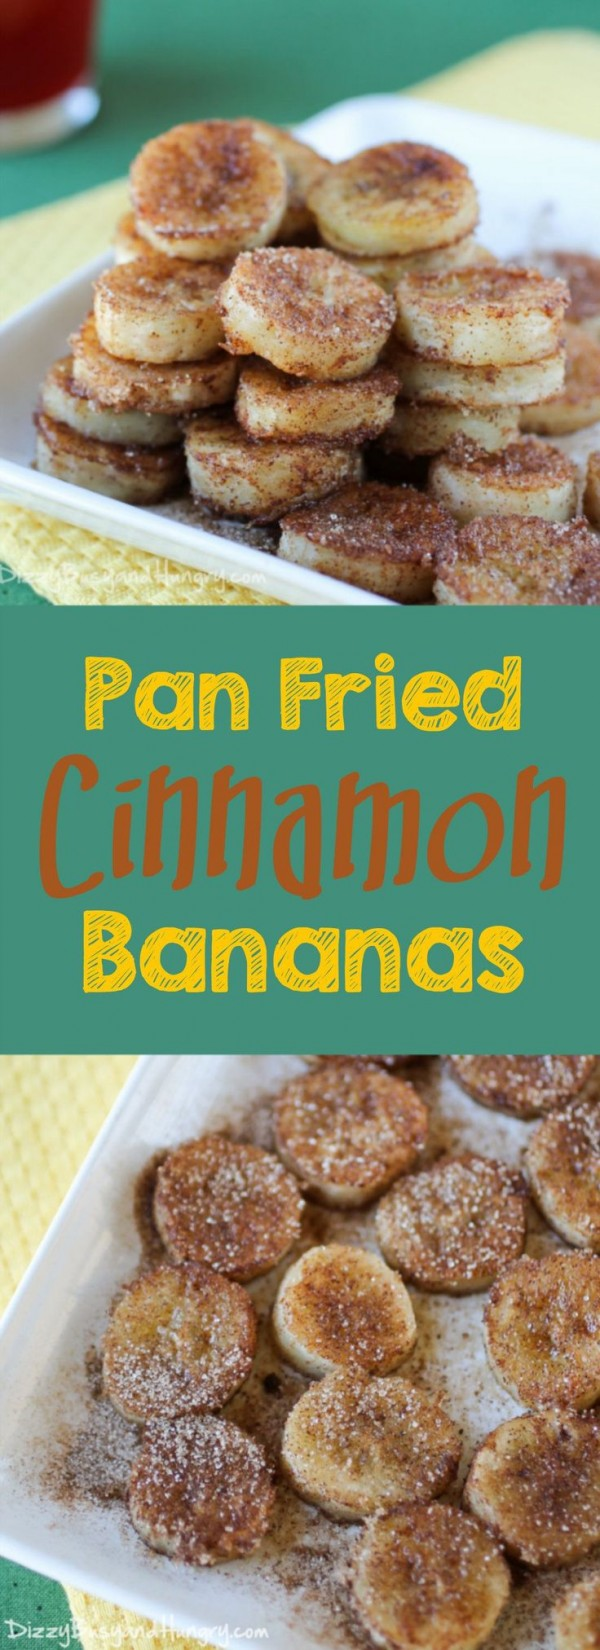 Get the recipe Pan Fried Cinnamon Bananas @recipes_to_go